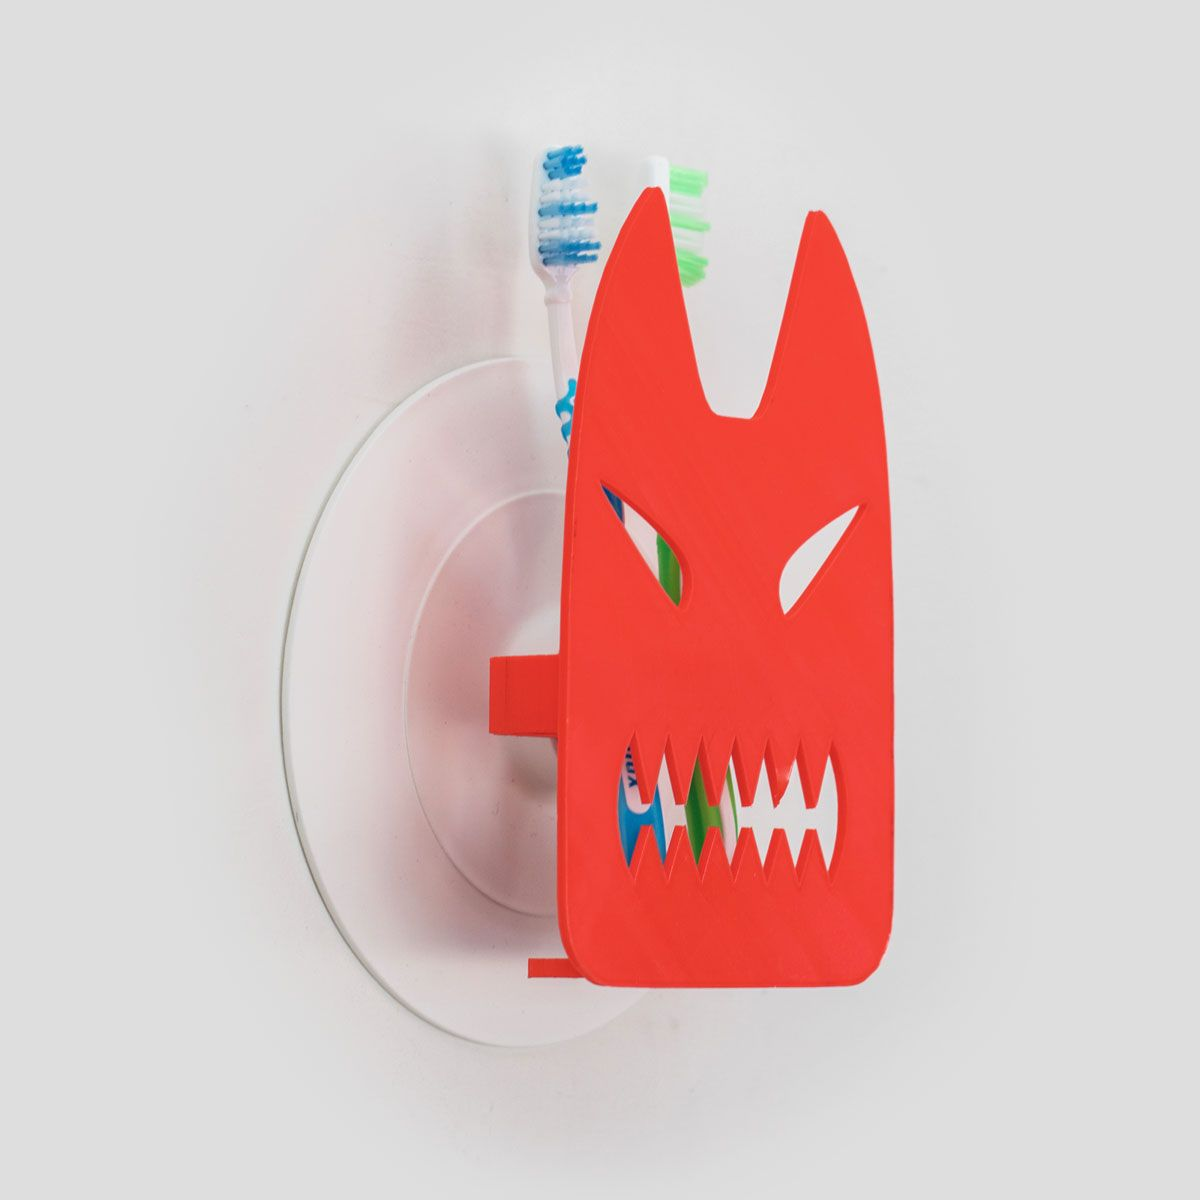 Toothy [Toothbrush Holder]